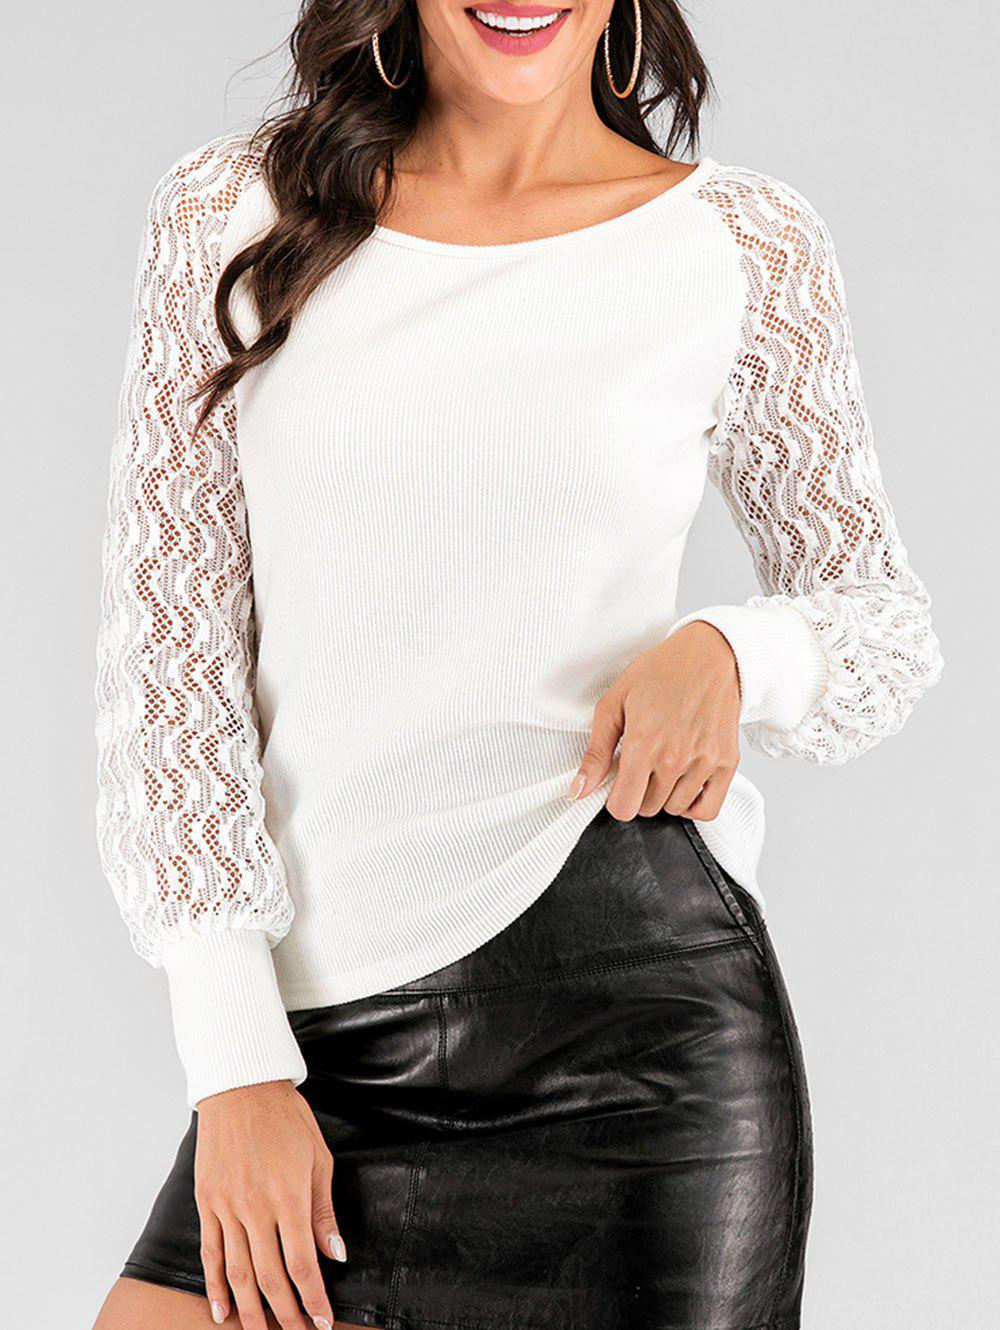 Ribbed Lace See Thru Raglan Sleeve Sweater - WHITE L